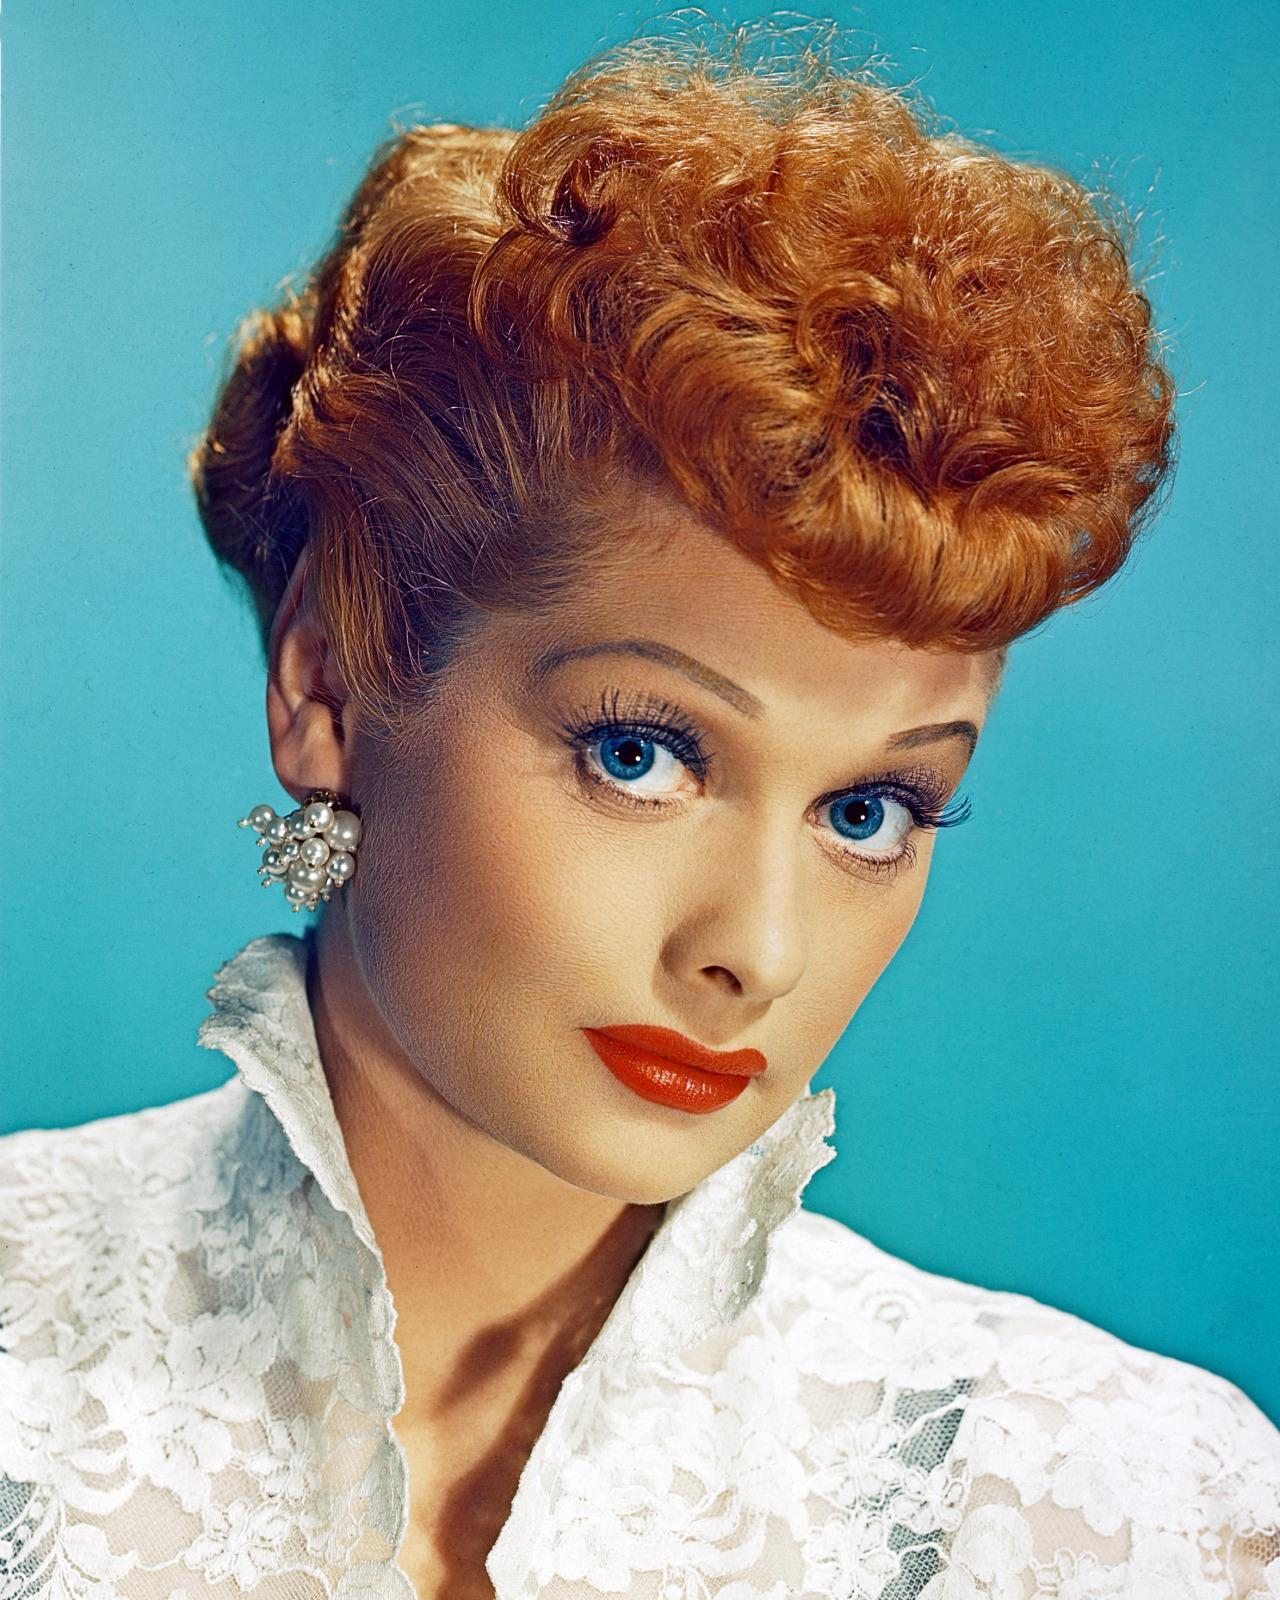 028cb7dc35 6 Facts About Redheads That You Didn't Know (or Got Wrong)